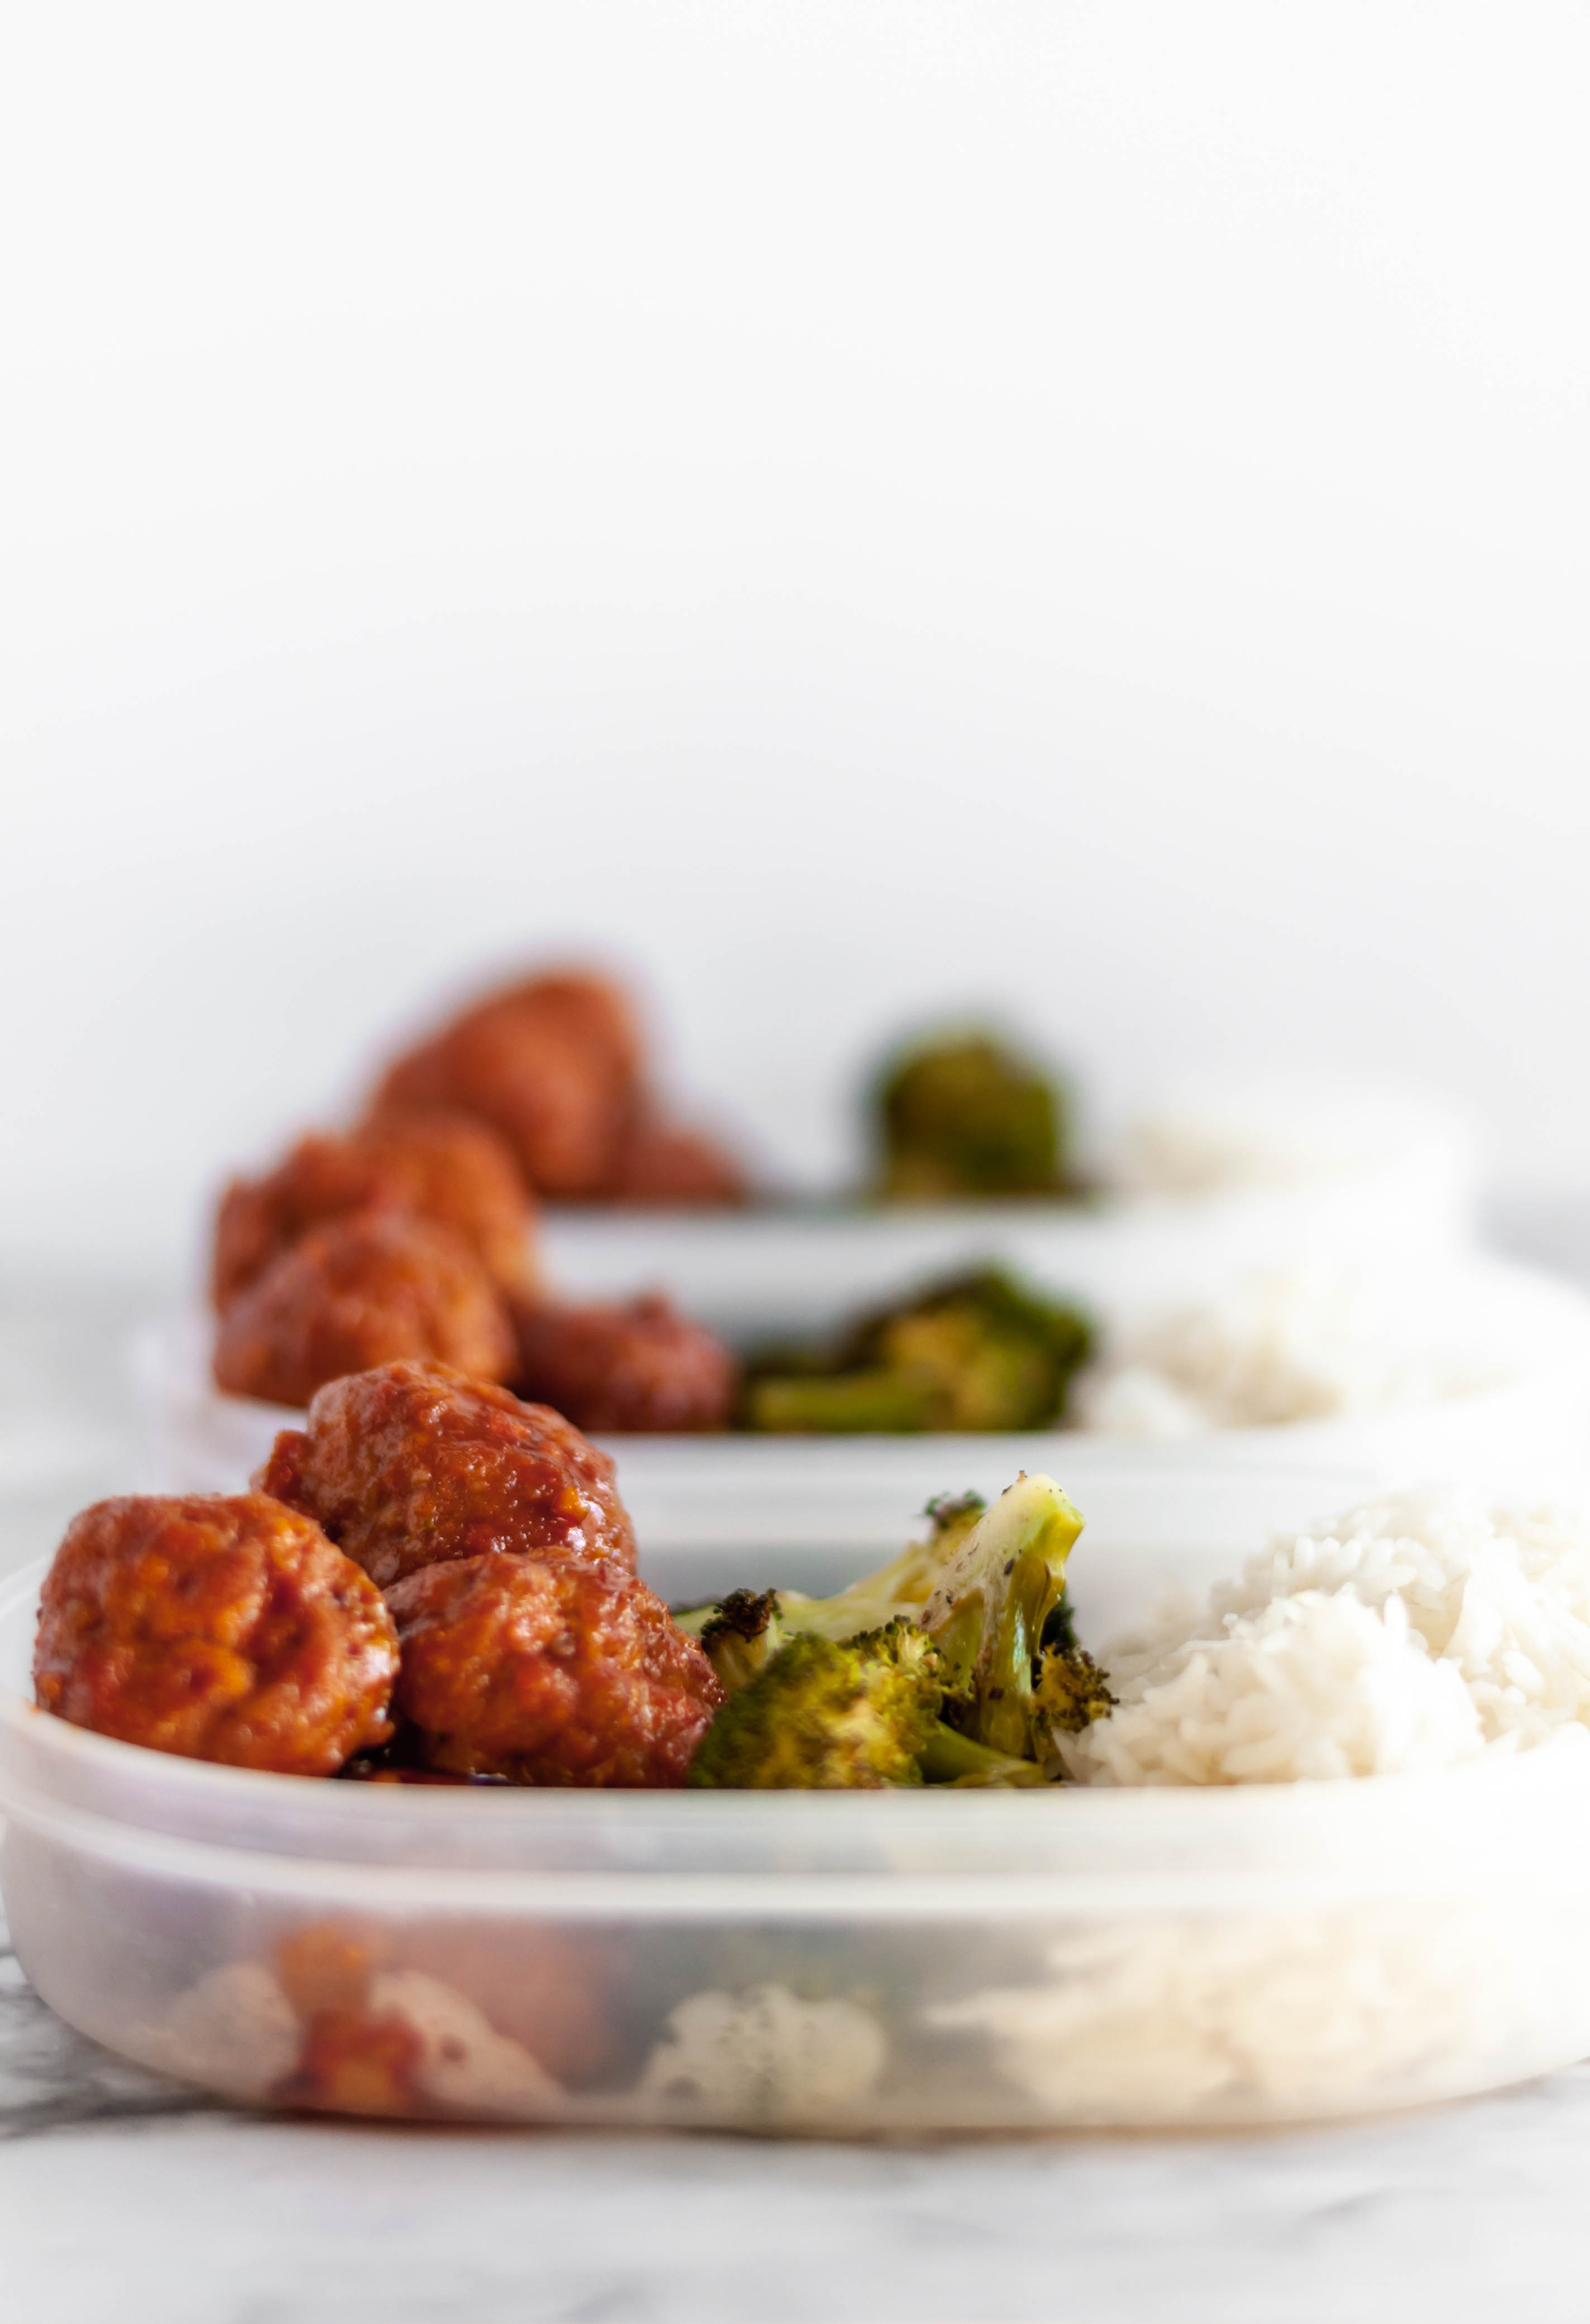 Korean Meatball Meal Prep is a spicy, flavorful way to eat through the week. Makes 5 hearty servings that are so filling and delicious.